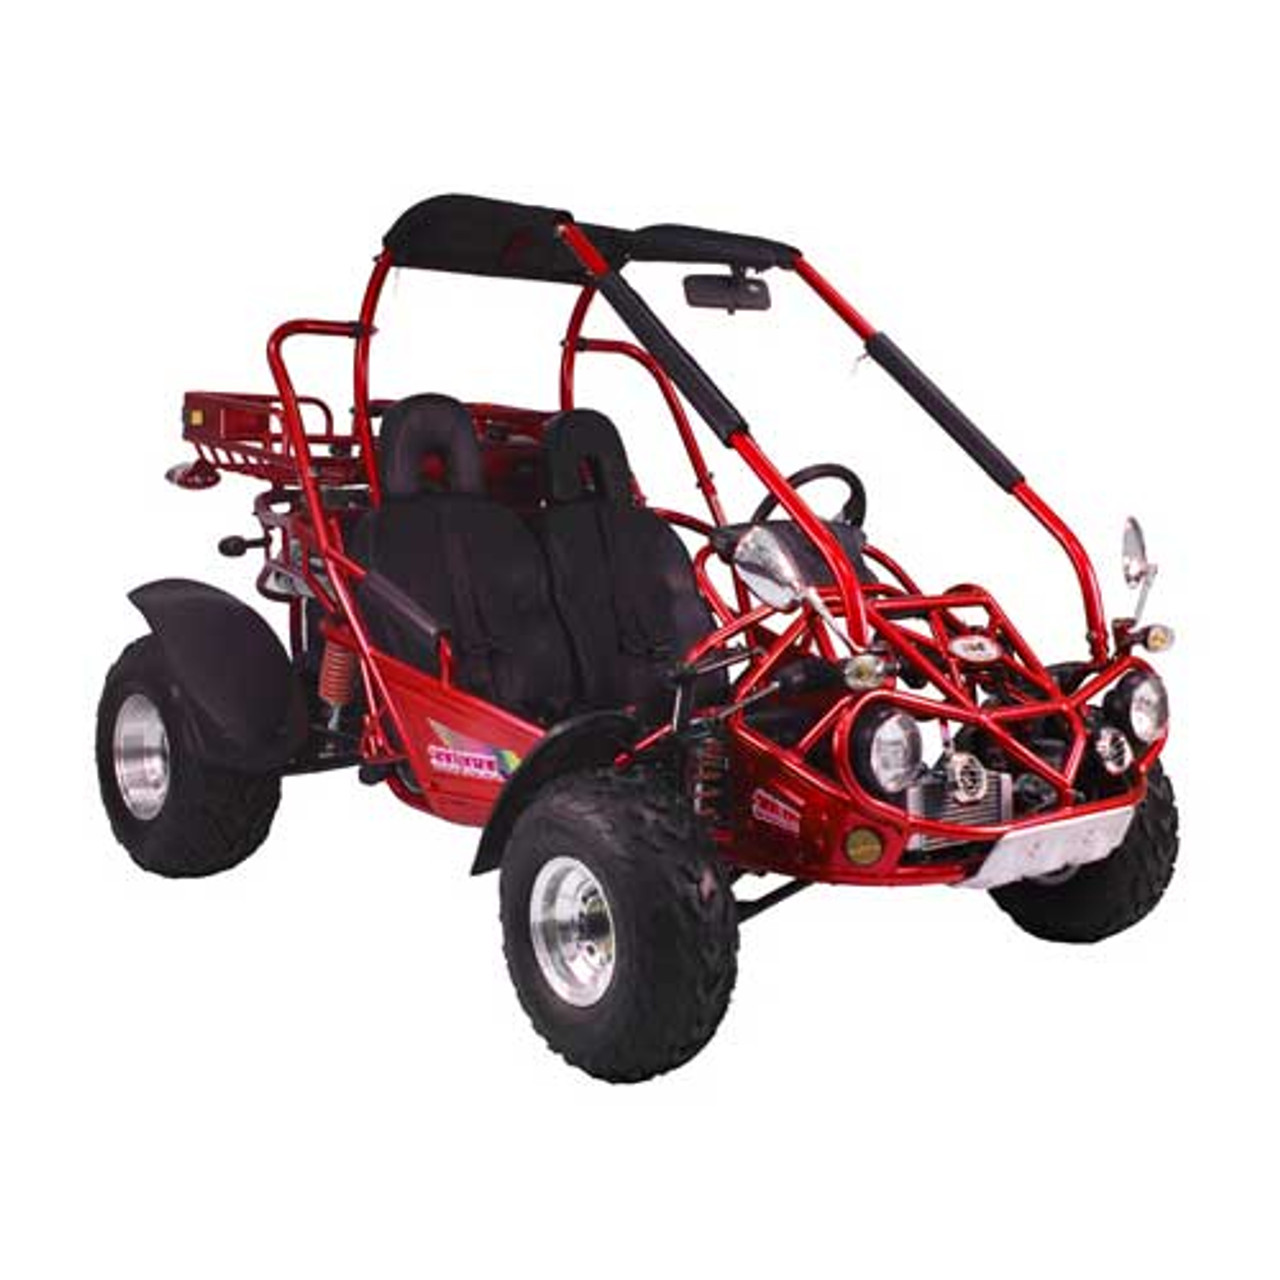 TrailMaster 300 XRX Go-Kart - Red